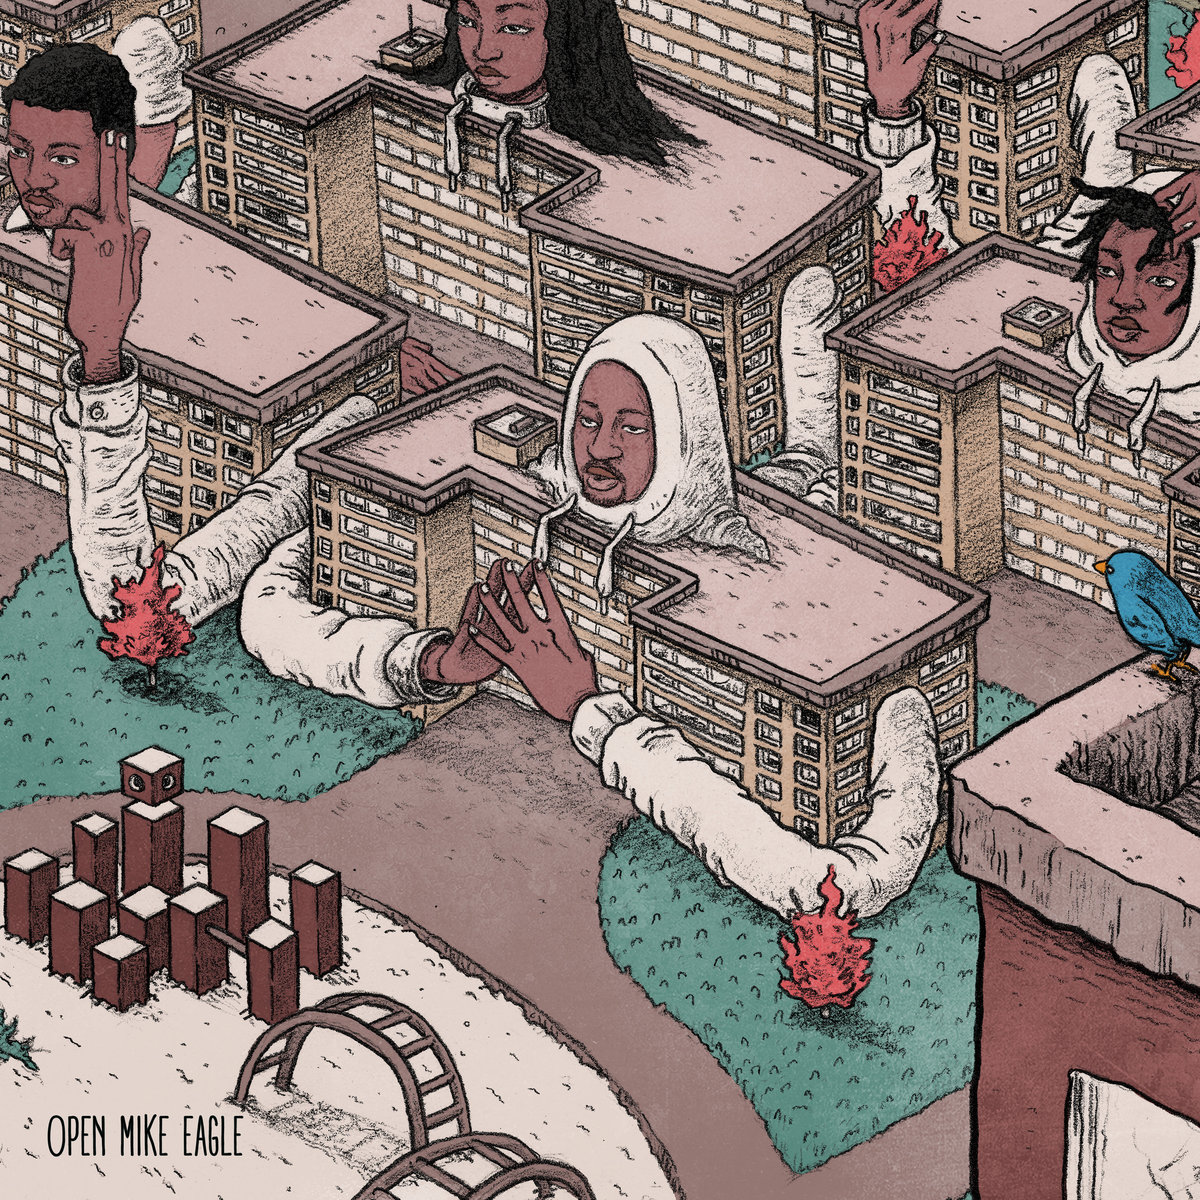 Open Mike Eagle's Brick Body Kids Still Daydream is a Fearlessly Self-aware Work